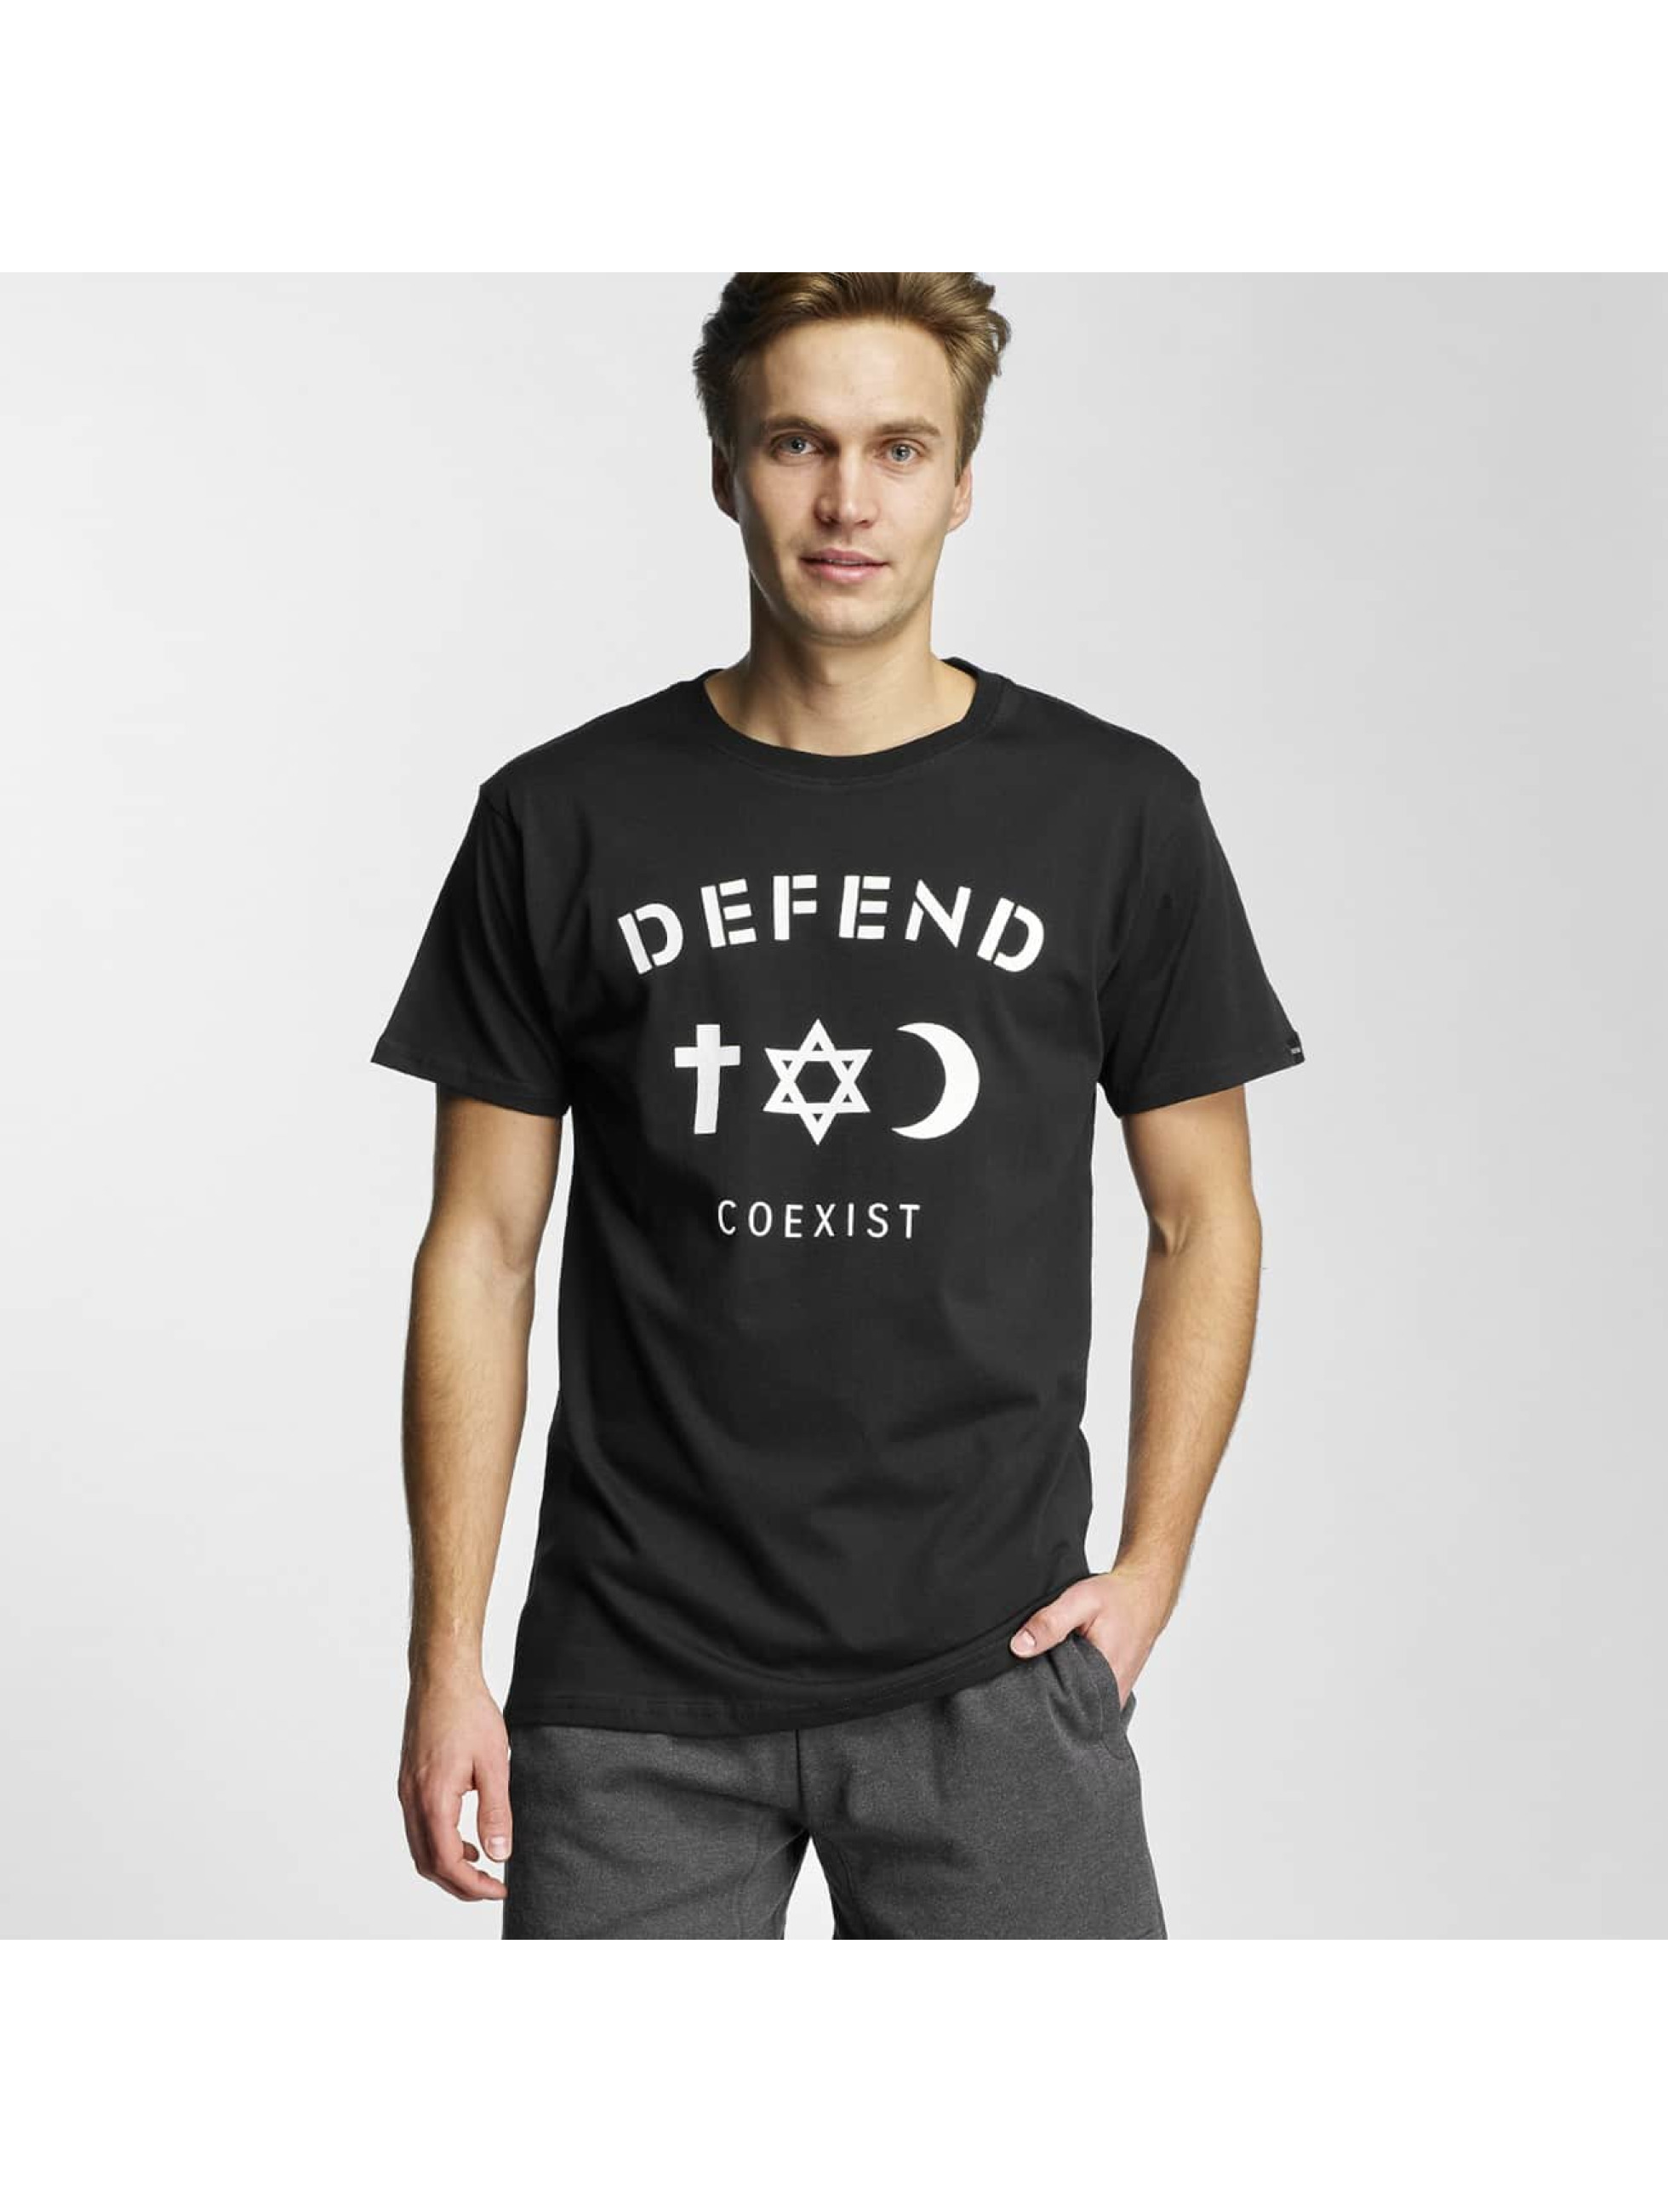 Defend Paris Männer T-Shirt CO in schwarz